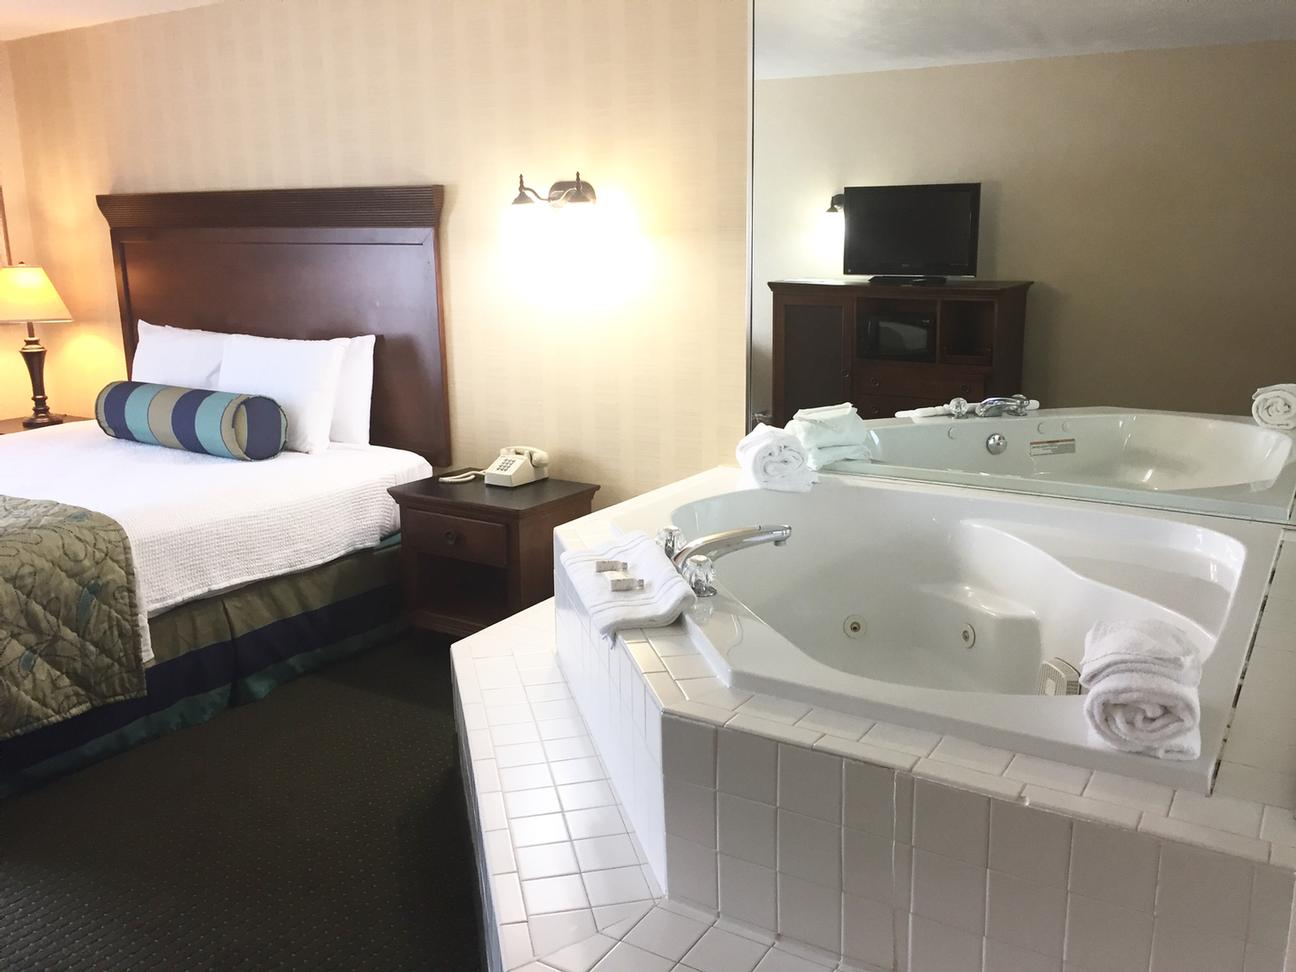 King Room W/ In-Room Jacuzzi 3 of 23